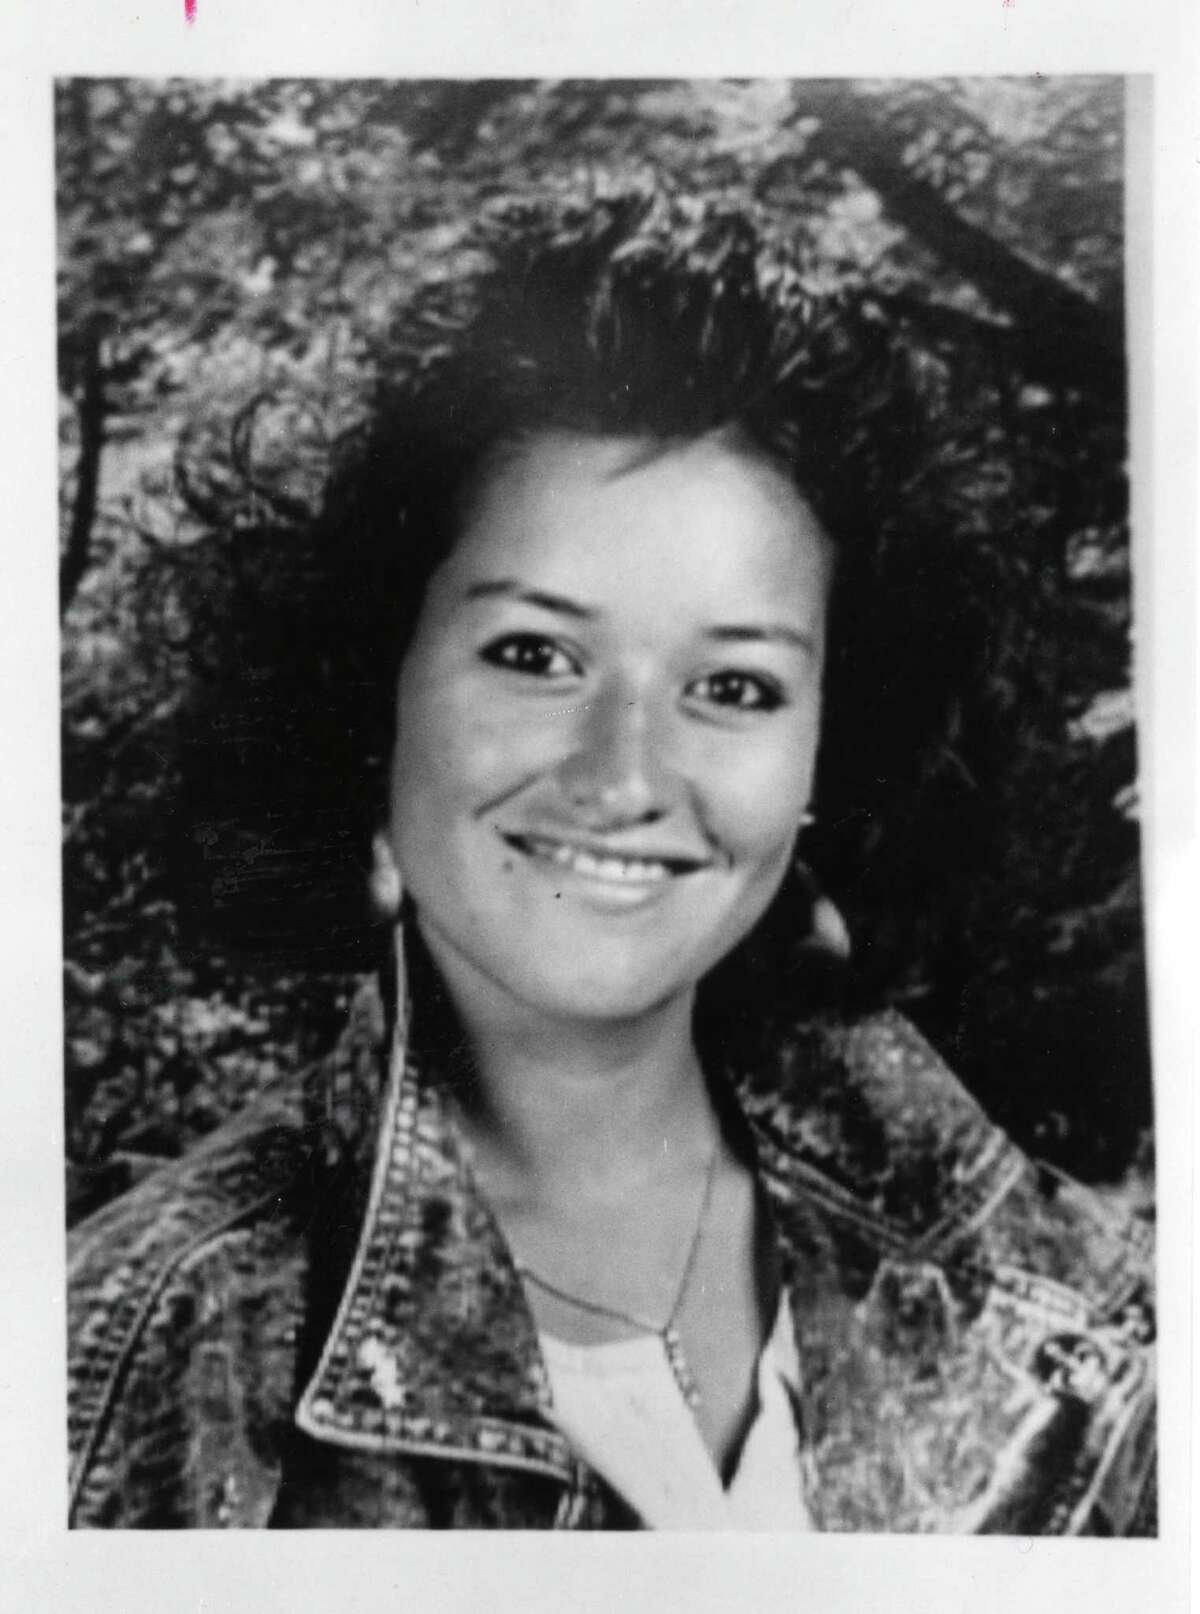 Copy shot of Alexandra Rendon, 20, a bank teller who went missing Jan. 3, 1991. CONTRIBUTED PHOTOGRAPH.